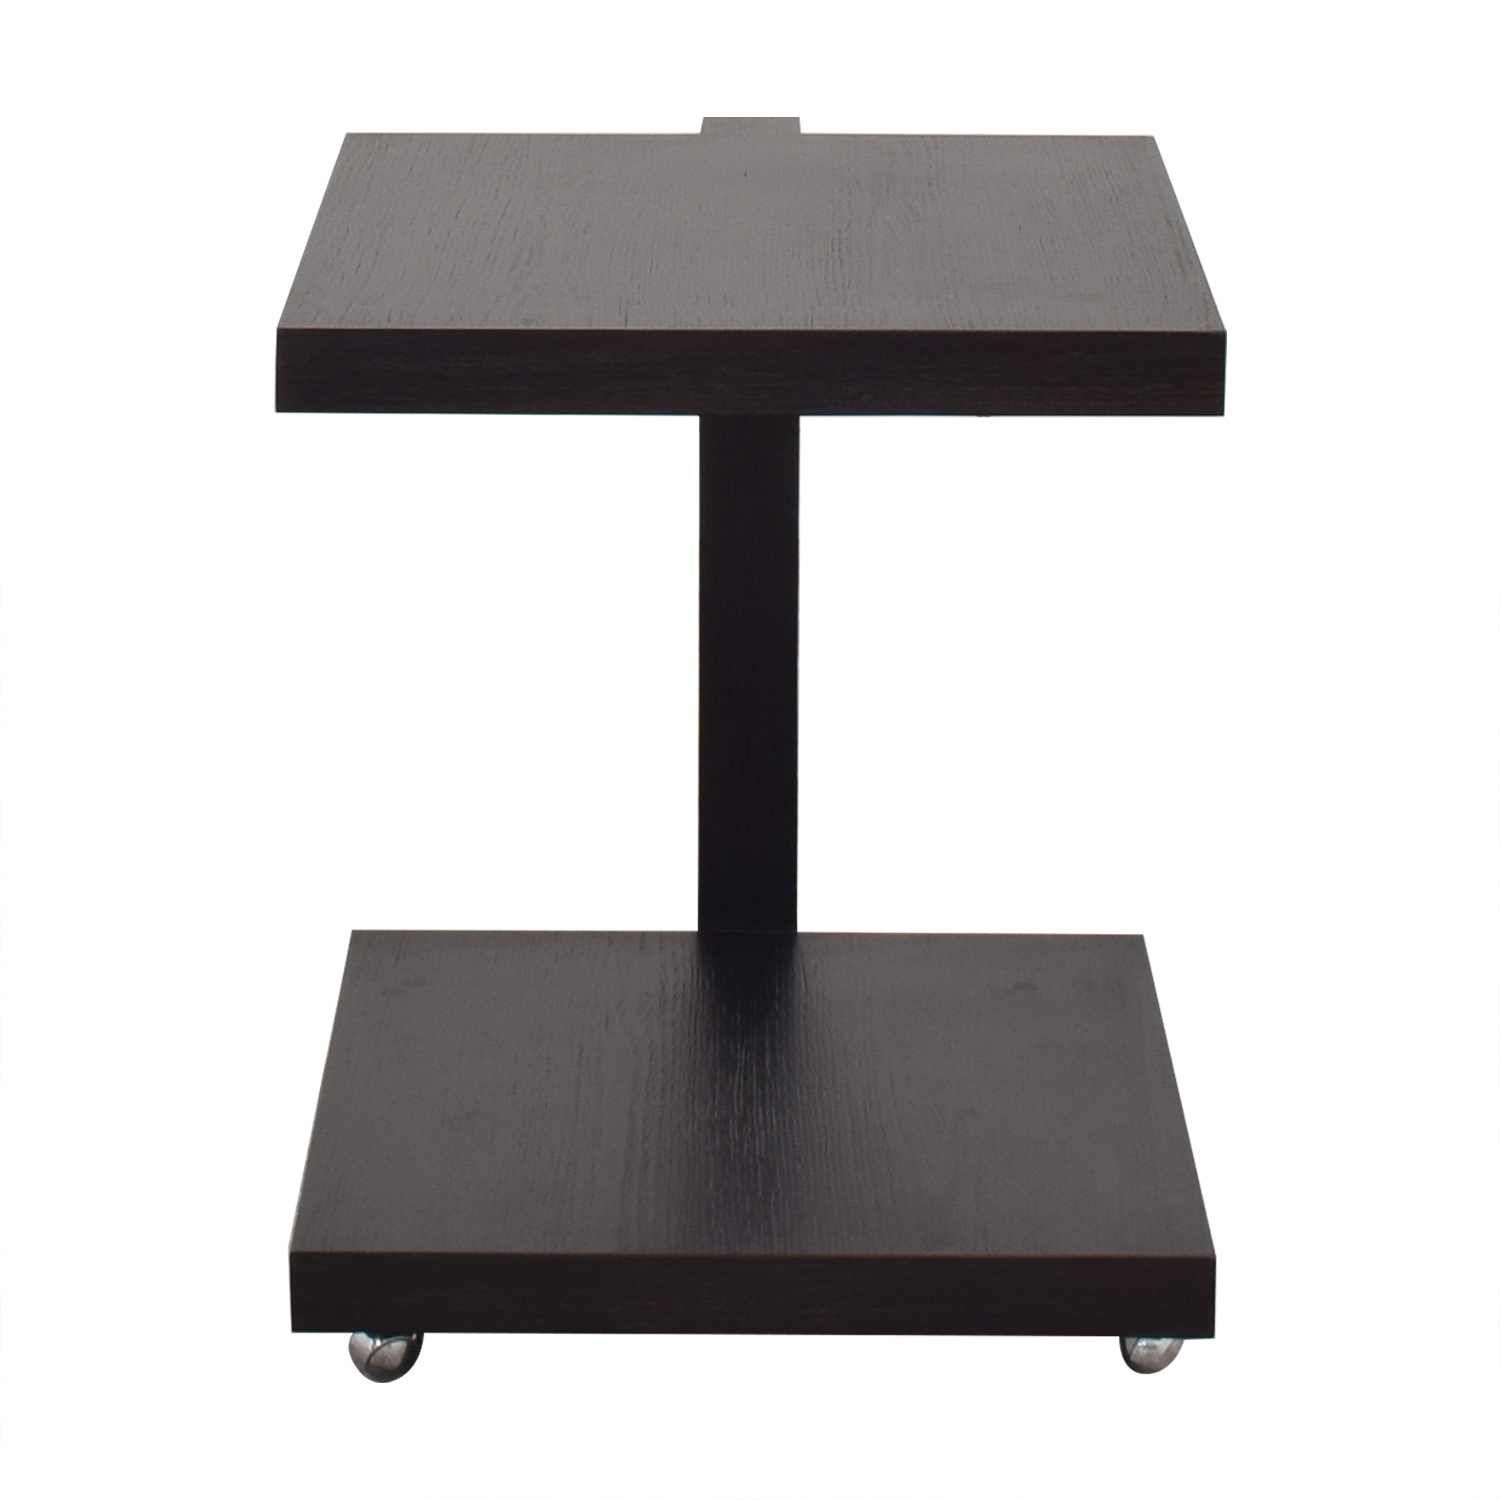 68 Off Moura Starr Moura Starr Floating Nightstand Tables